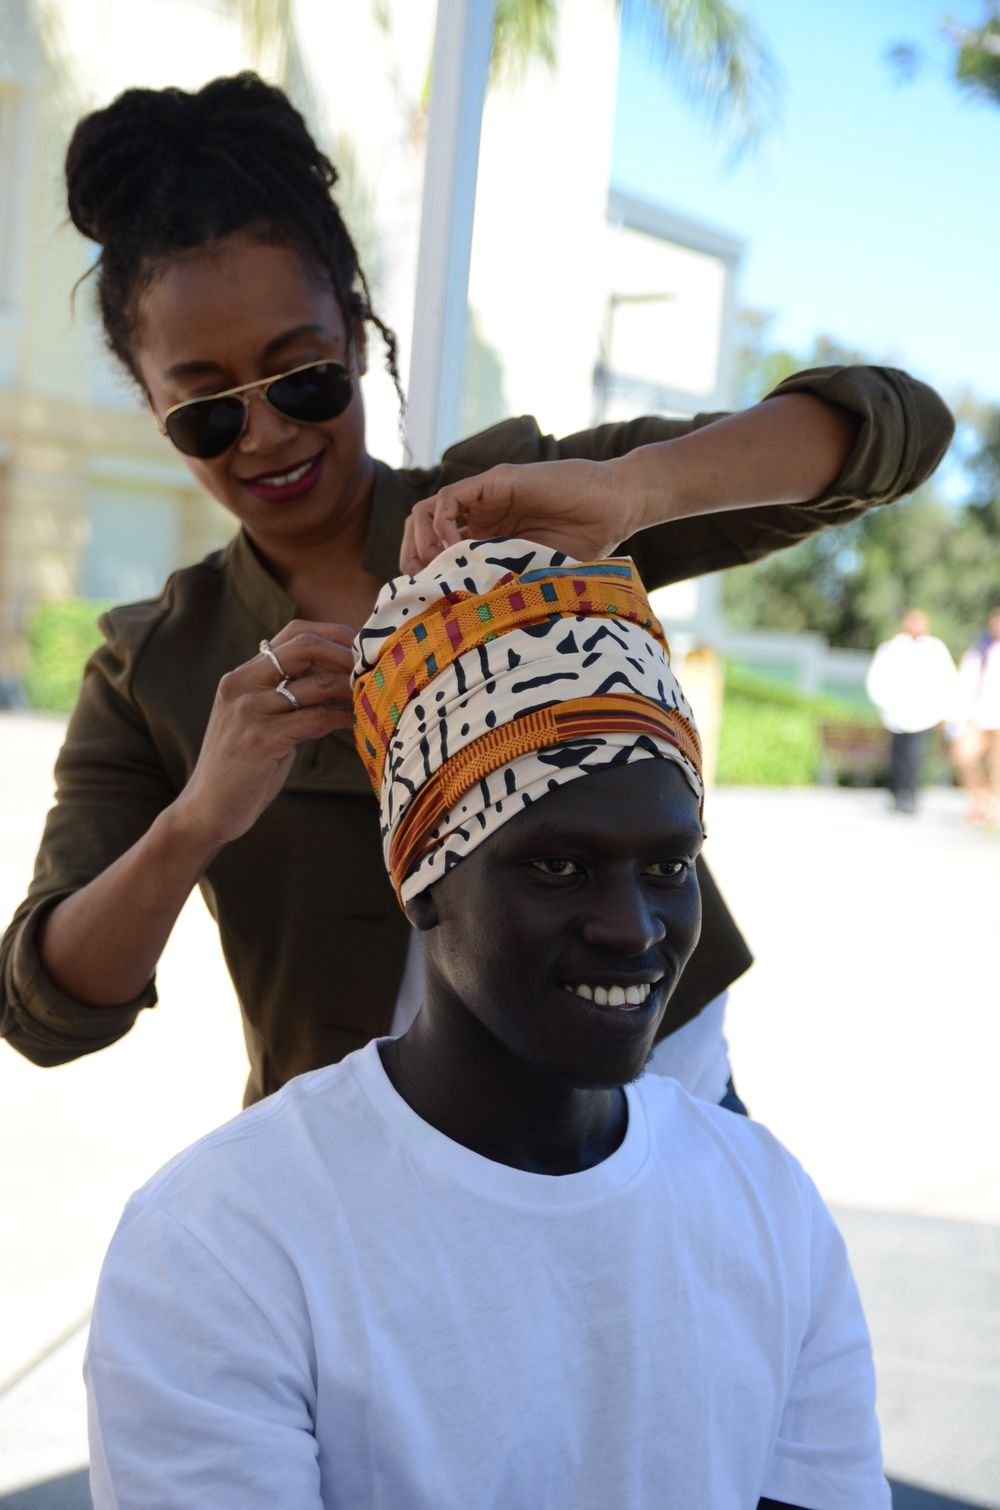 Diva Headwraps brand ambassador Gracey Bee assisted with